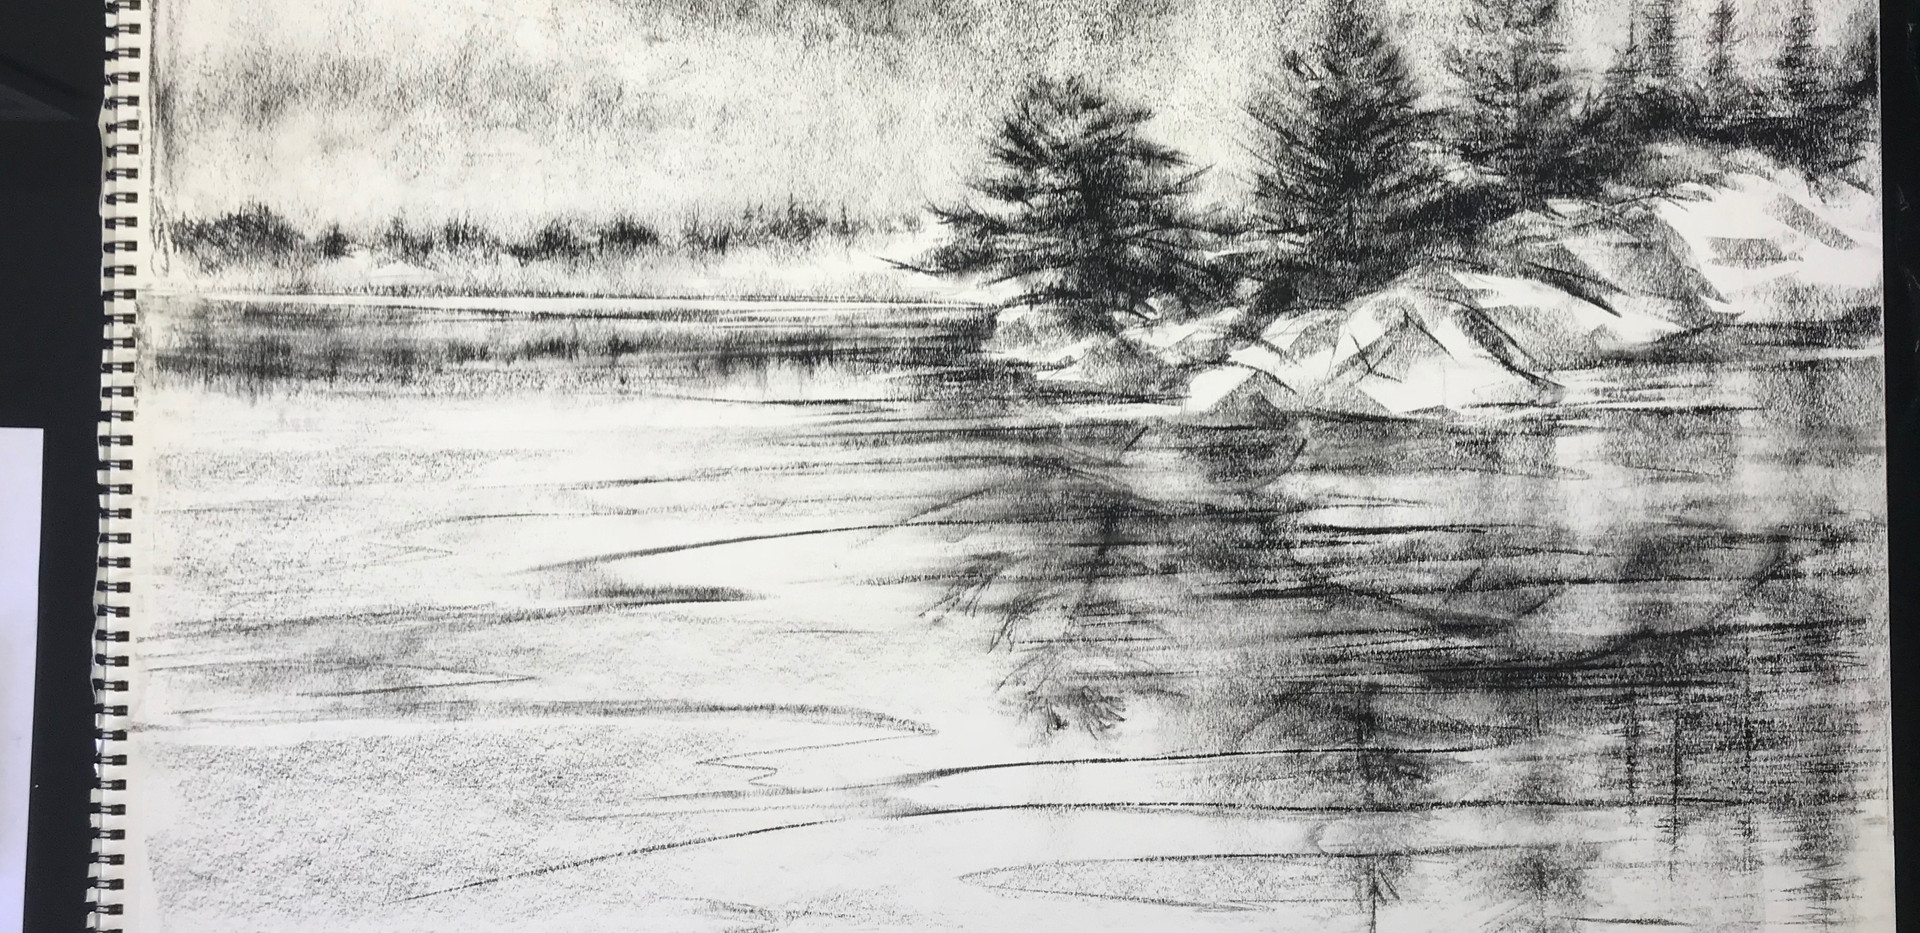 Relfections on Bayville Pond